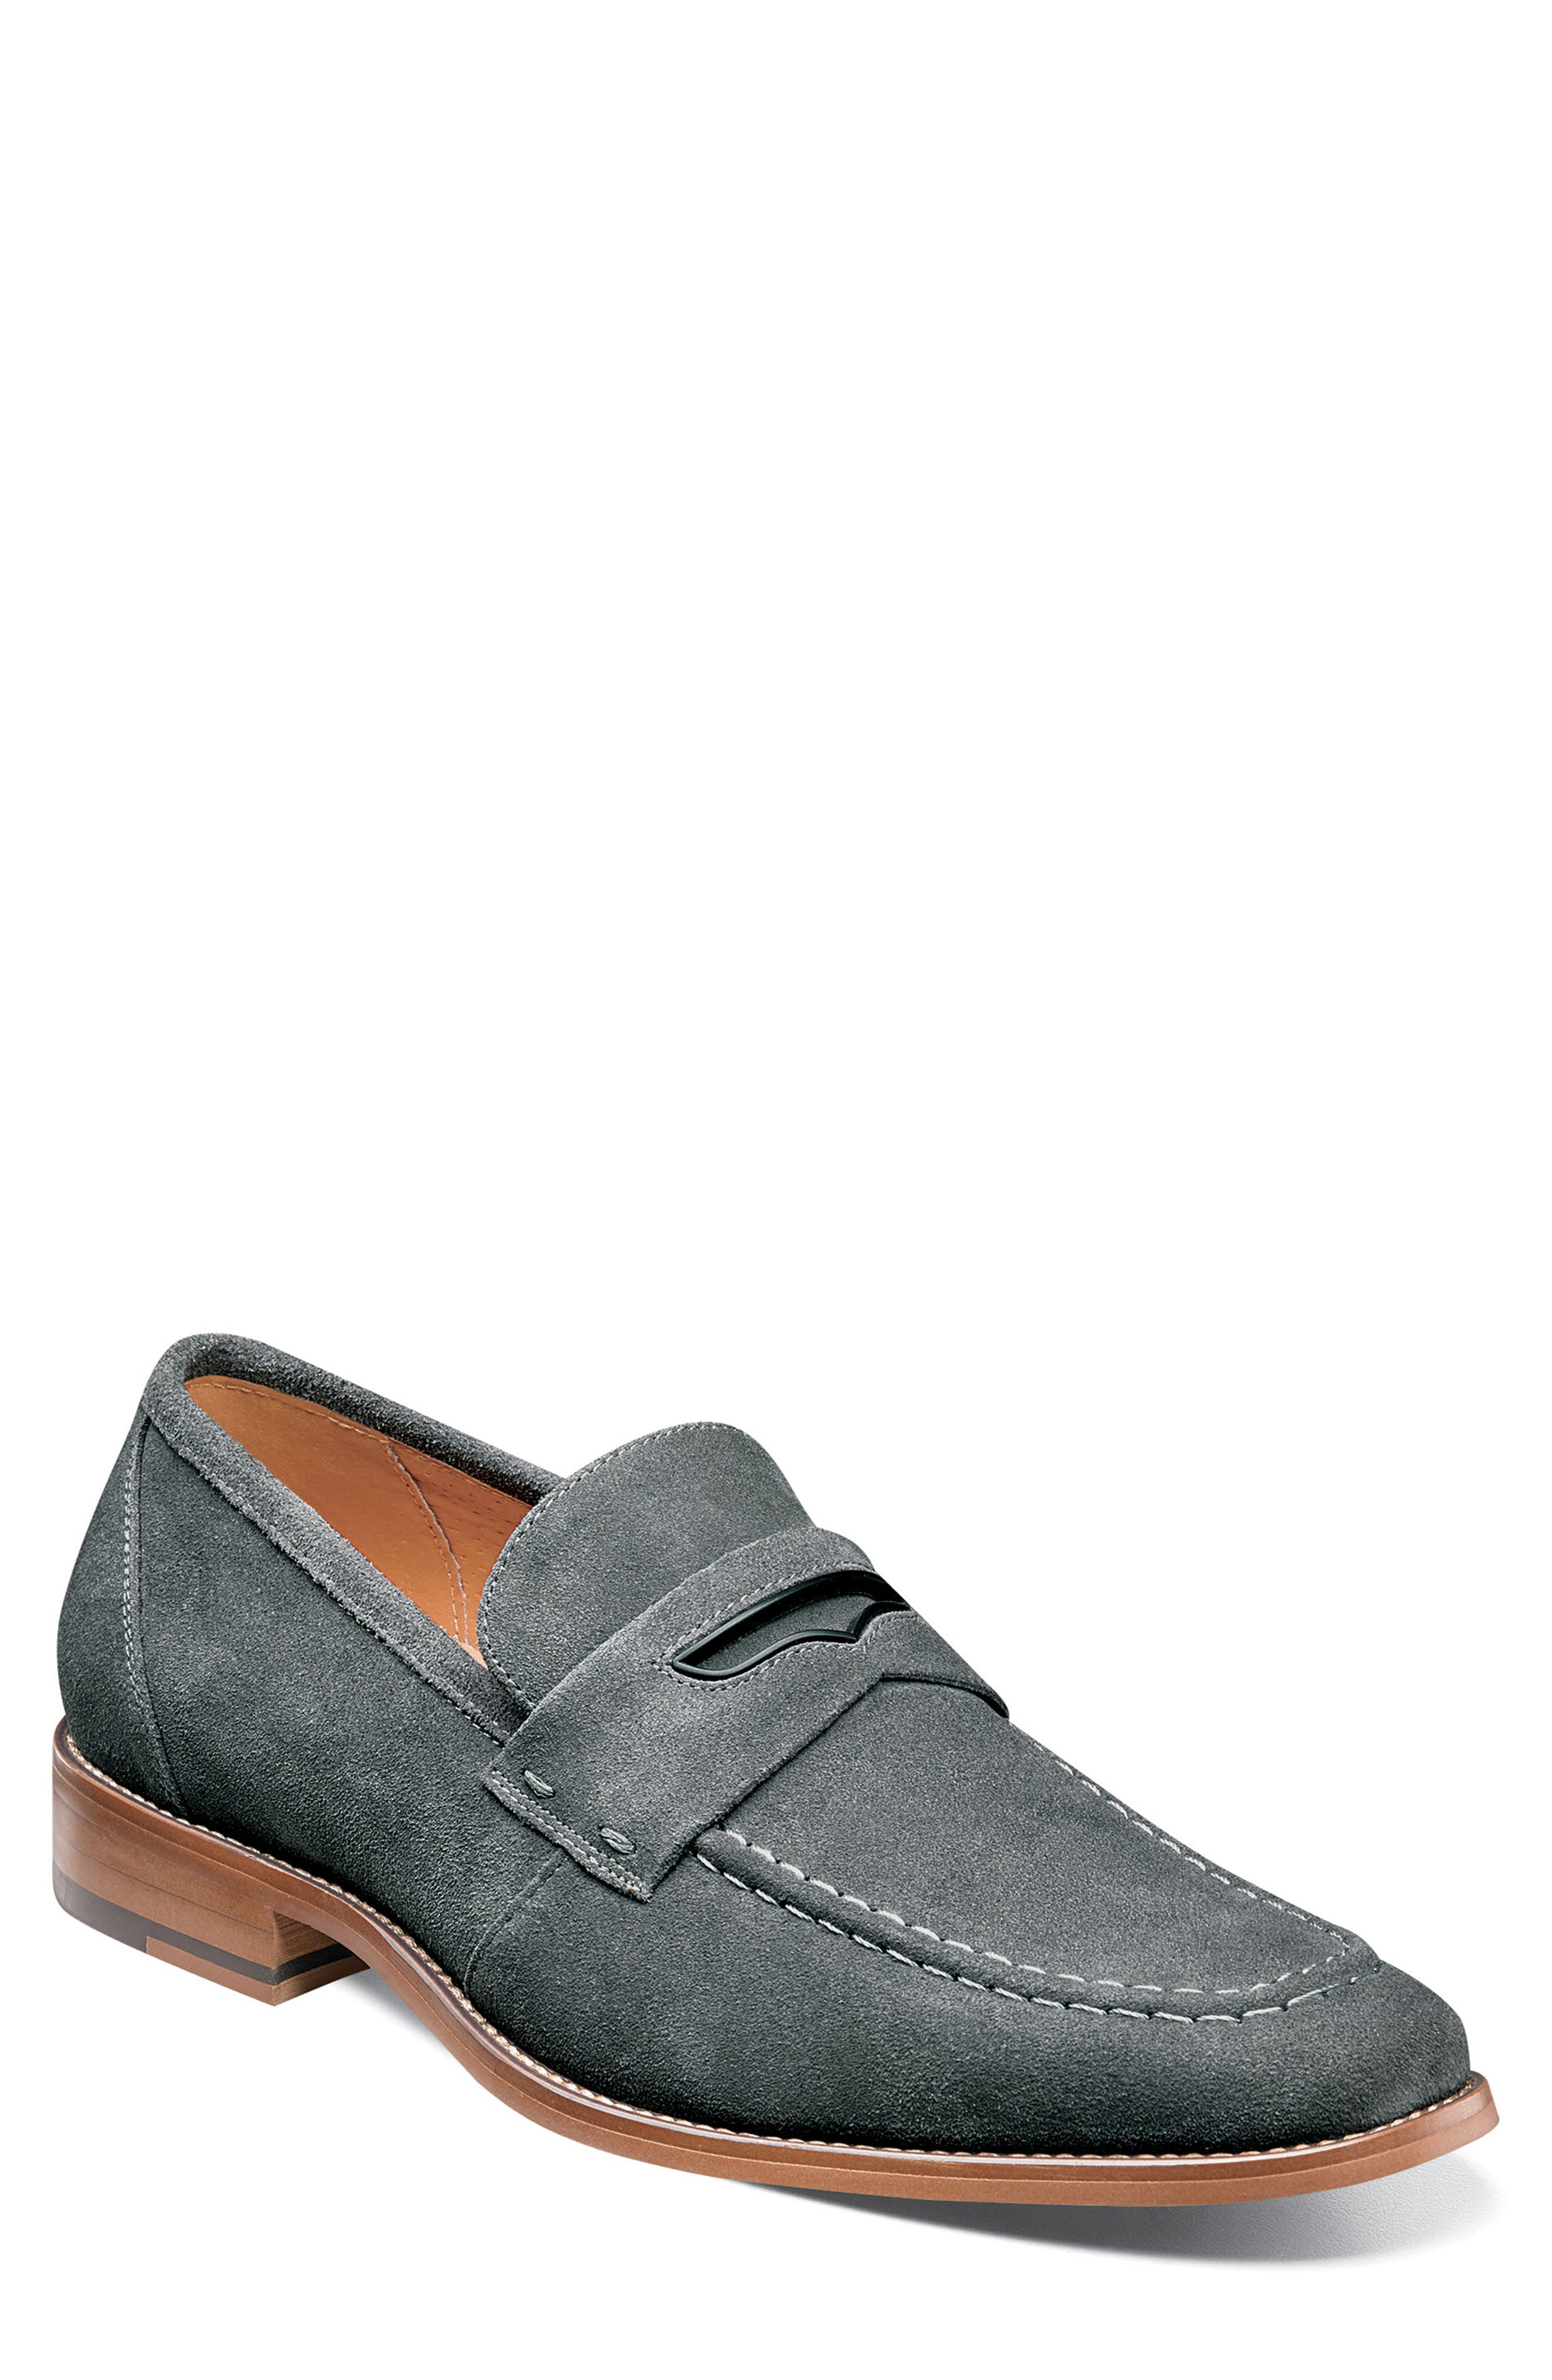 Stacy Adams Colfax Apron Toe Penny Loafer- Grey